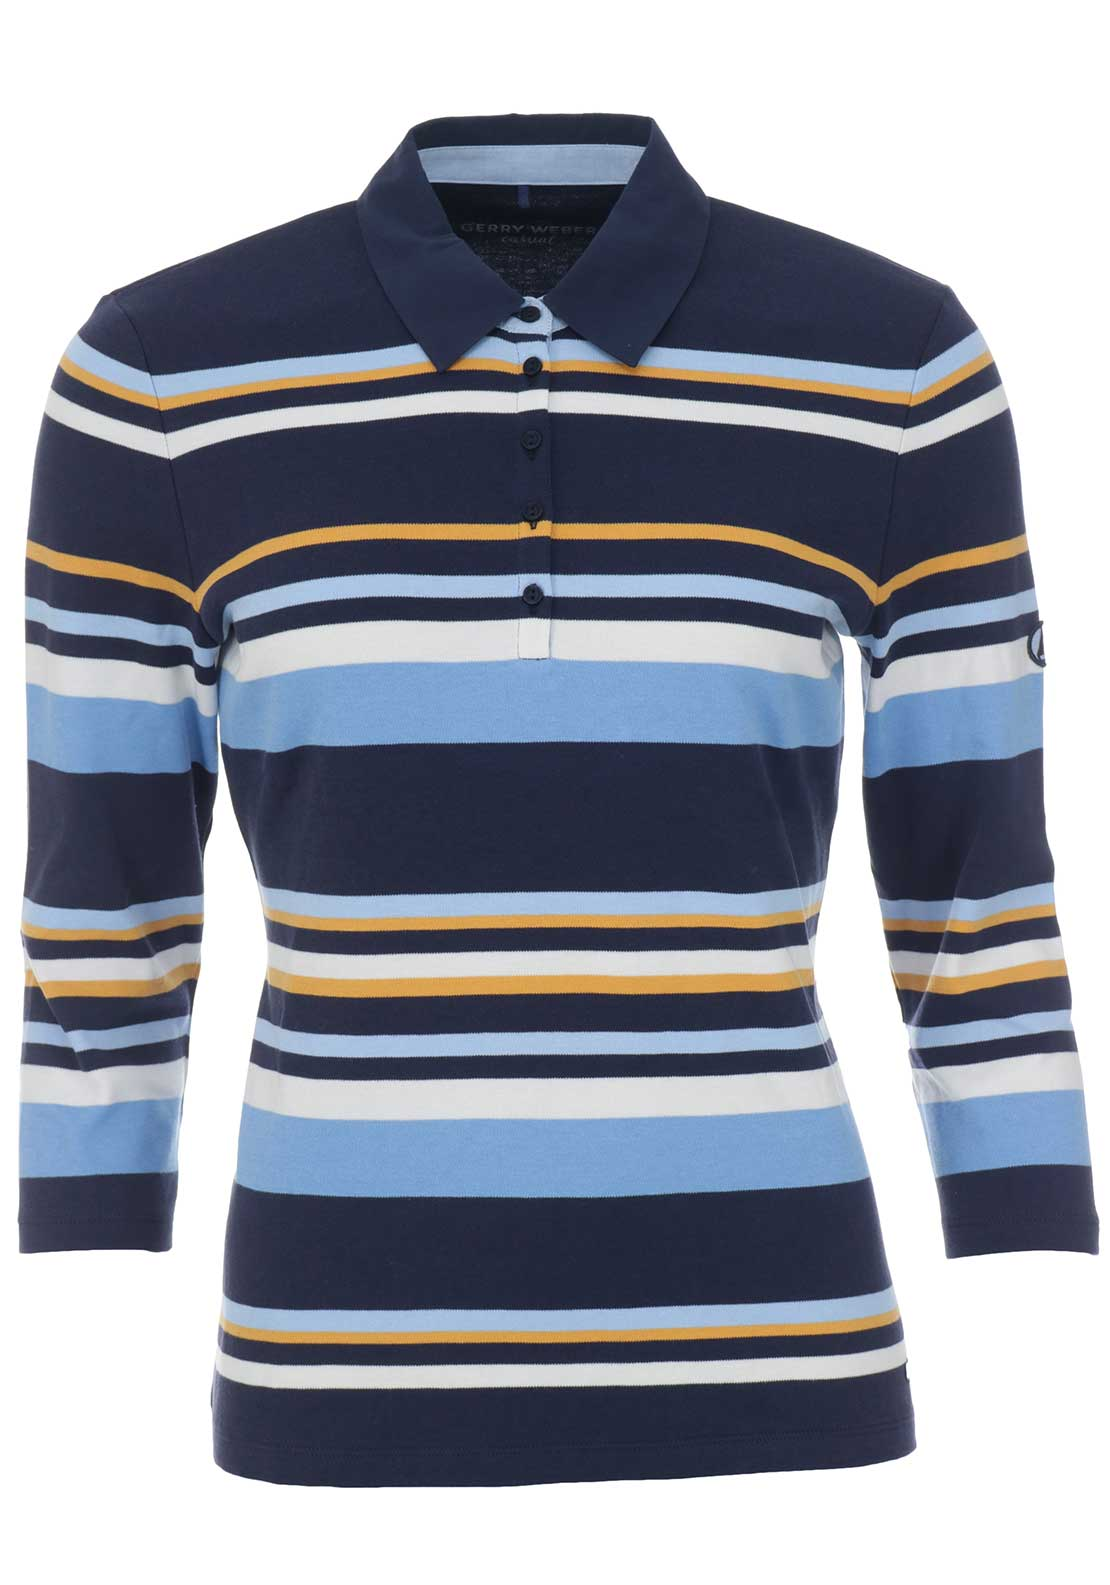 Gerry Weber Striped Polo Shirt, Navy Multi